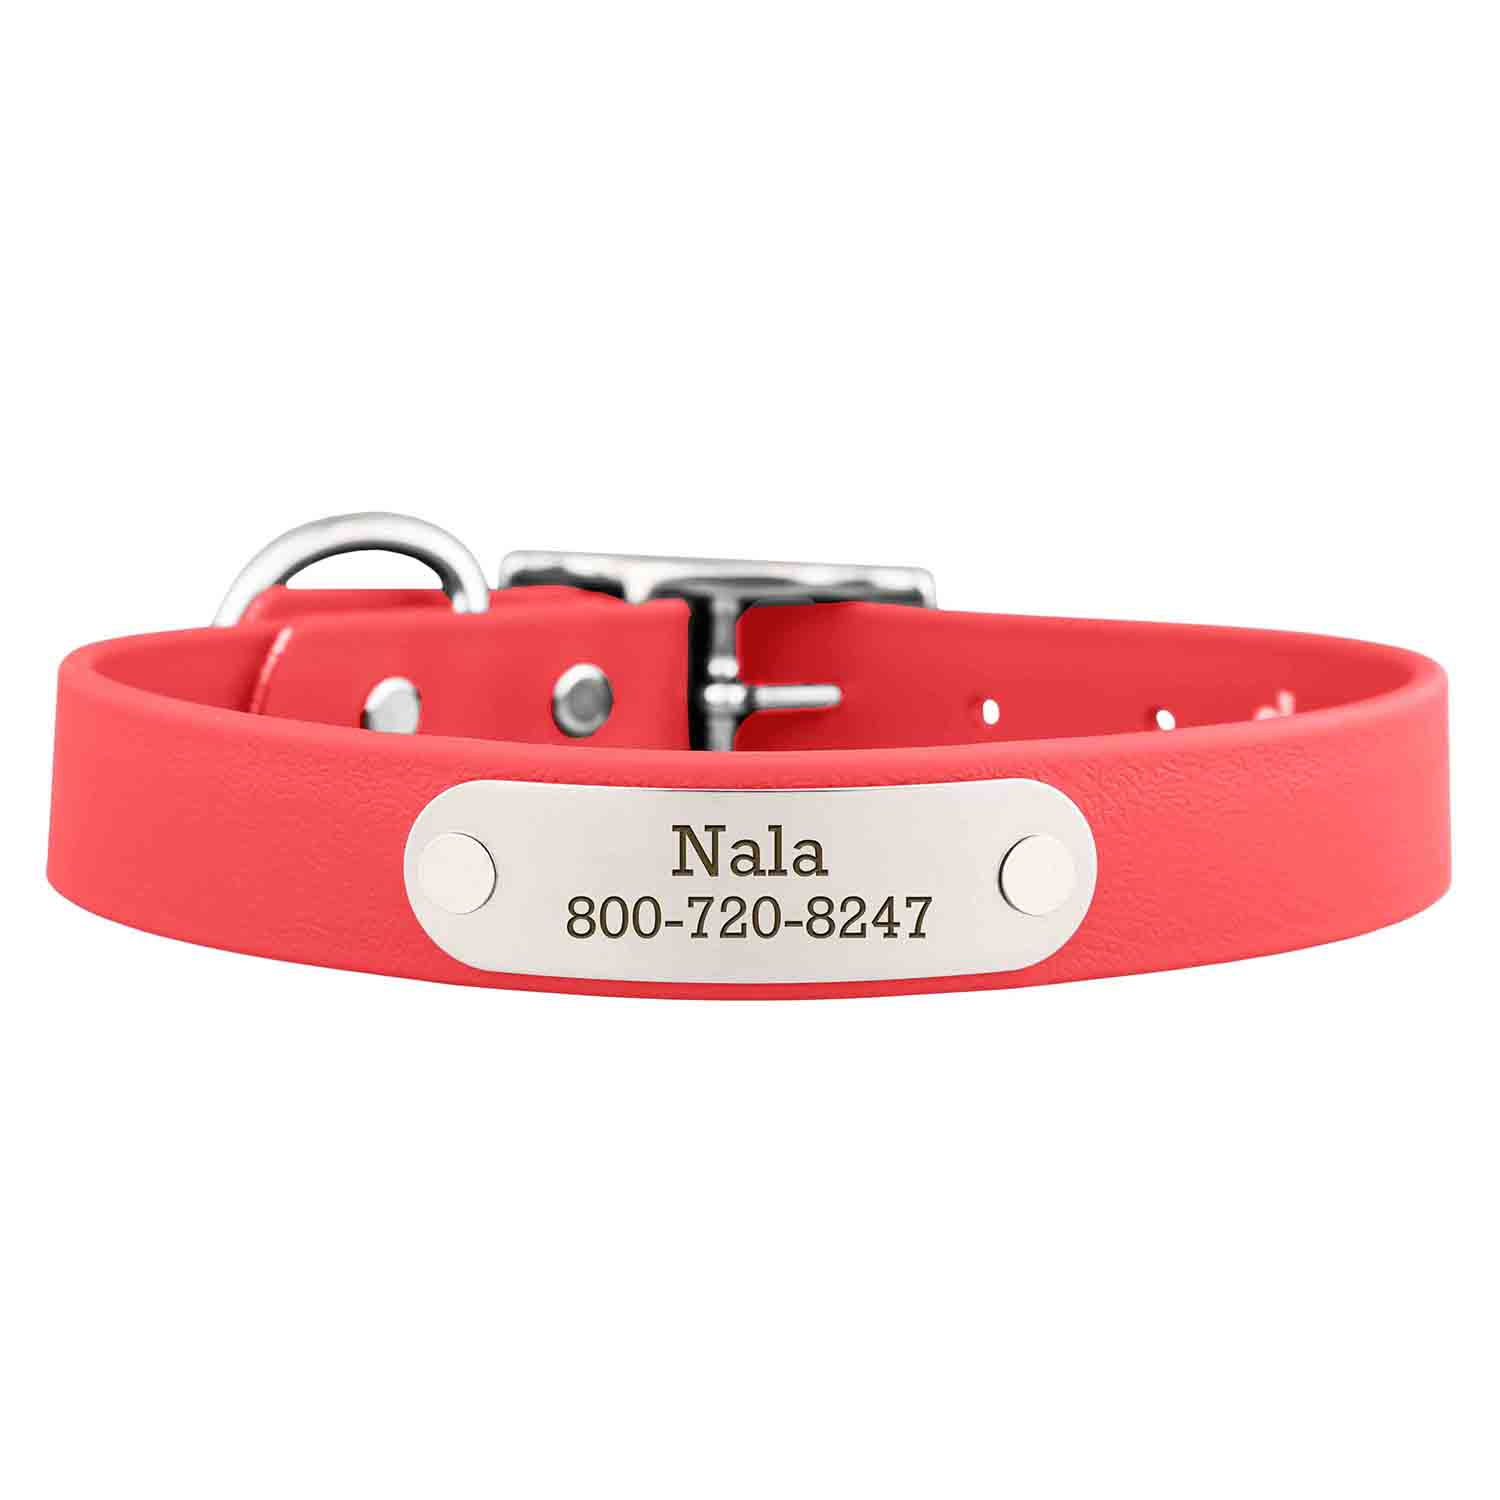 Waterproof Soft Grip Dog Collar with Personalized Nameplate Coral